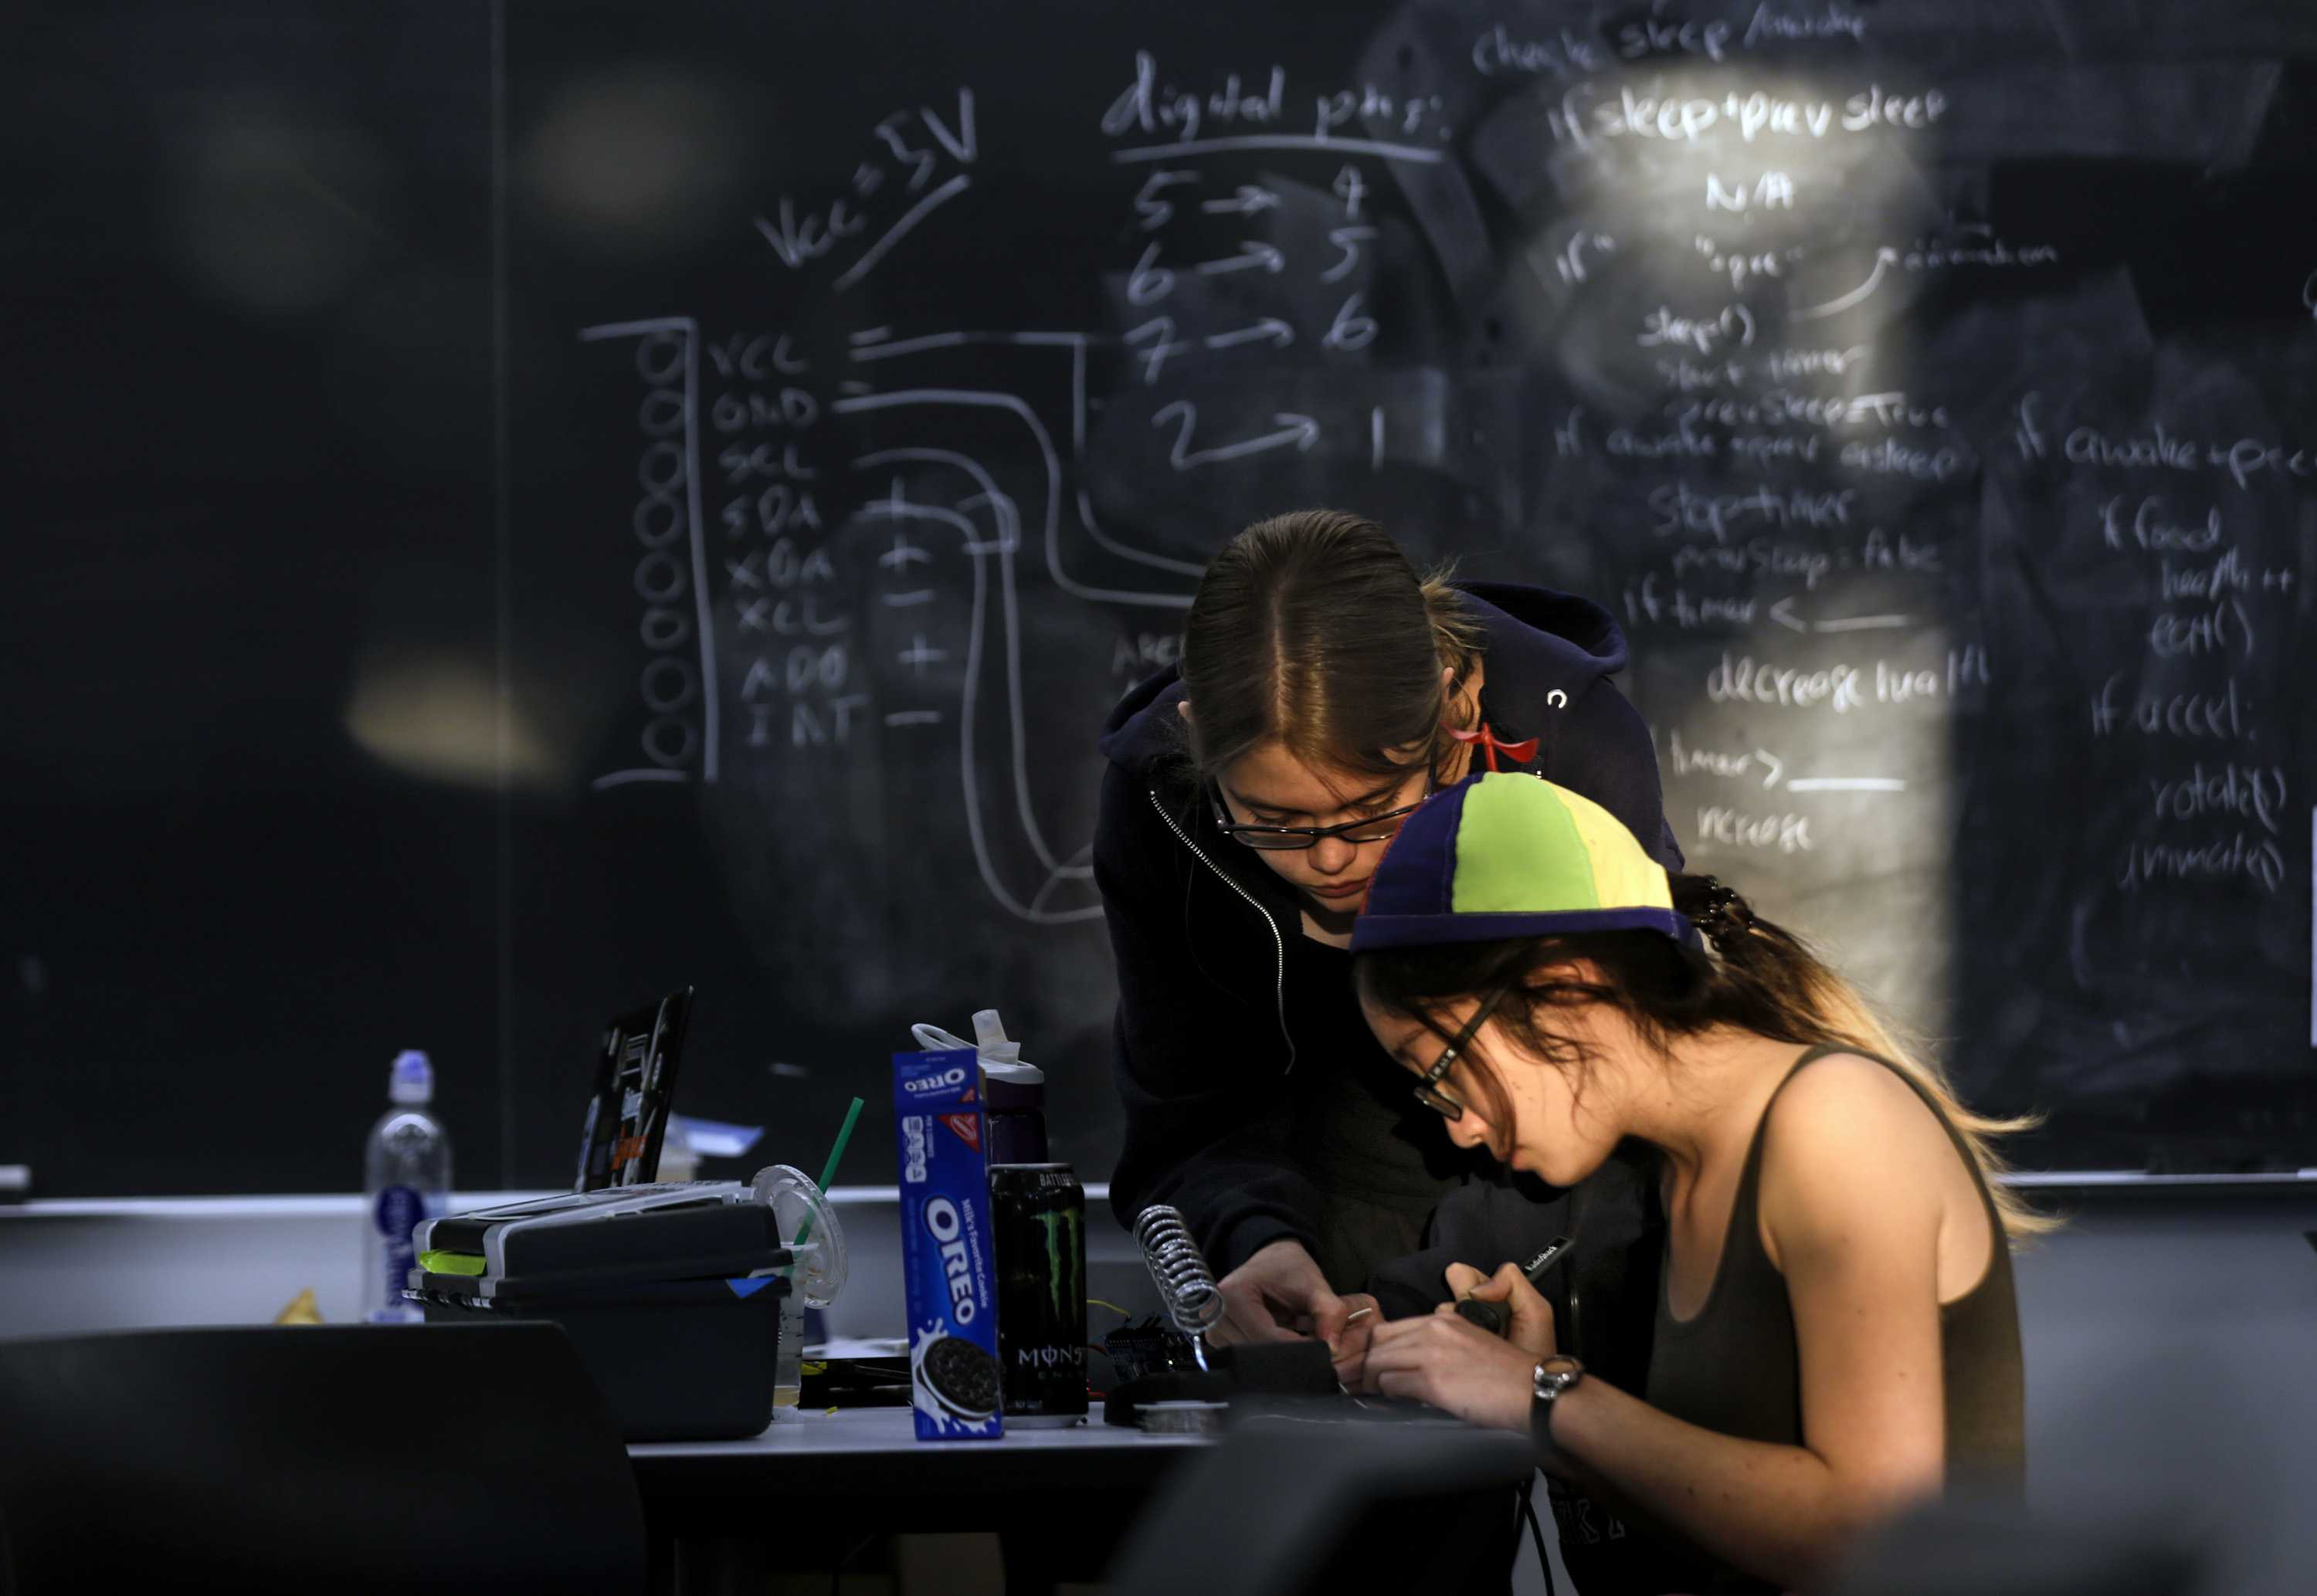 Morning sun hits Elizabeth Poss, 19, left, and Lauren Hu, 20, as they work on their group project